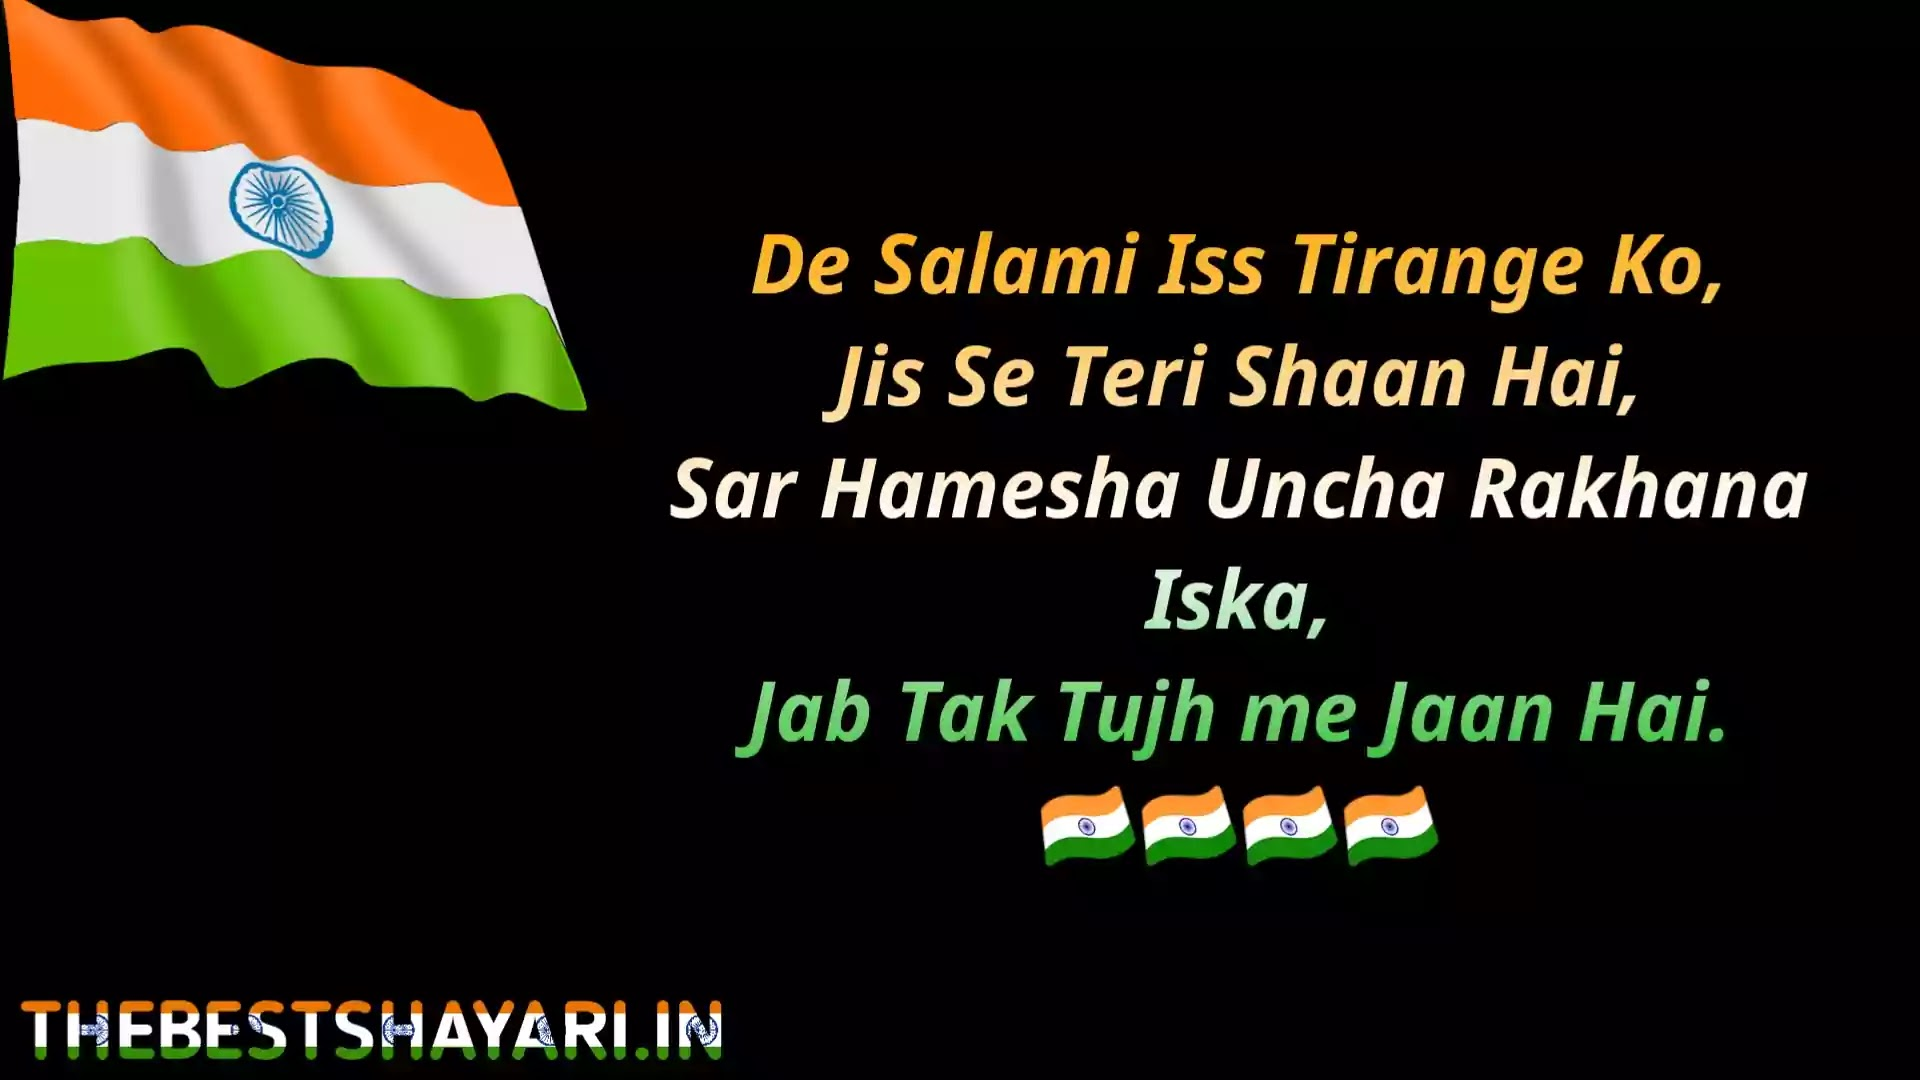 Republic day images 2022